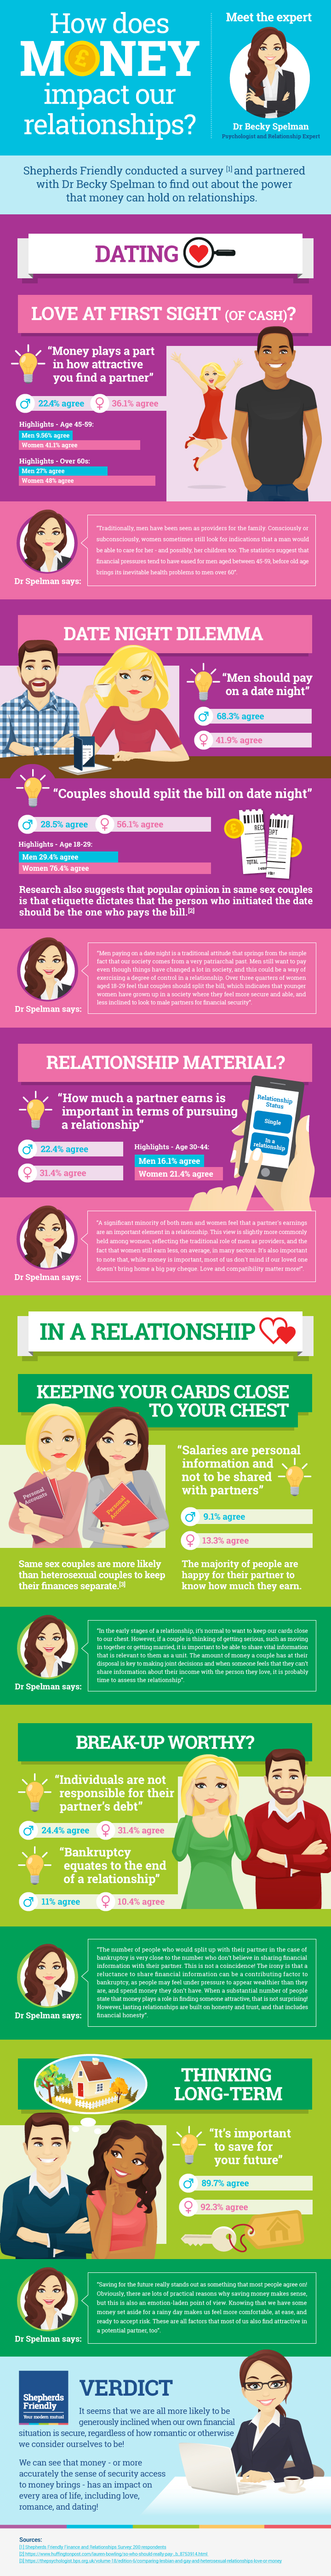 Love at First Cash: The Role of Money in Romantic Relationships - Infographic